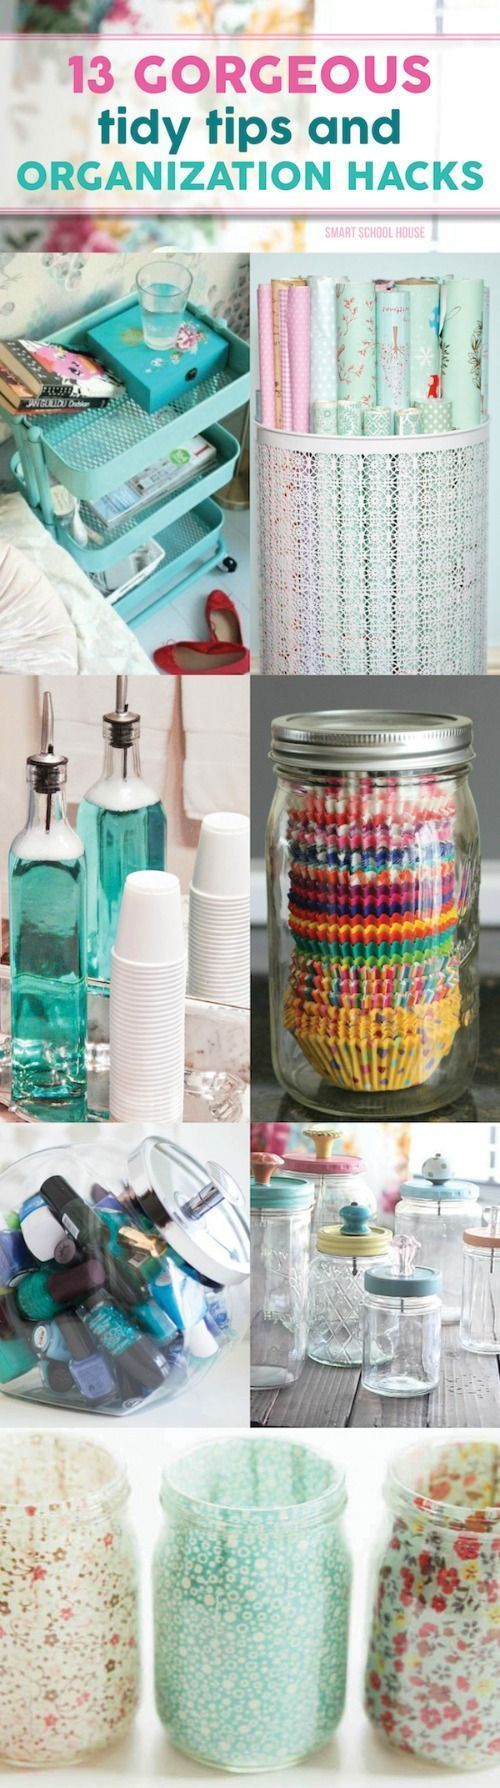 199 Home Organization Hacks You Need to Try Today- An organized home is a happy home! No matter what area of your home needs reorganization, these home organization hacks are sure to help! | home organization, organizing tips and tricks, organizing hacks